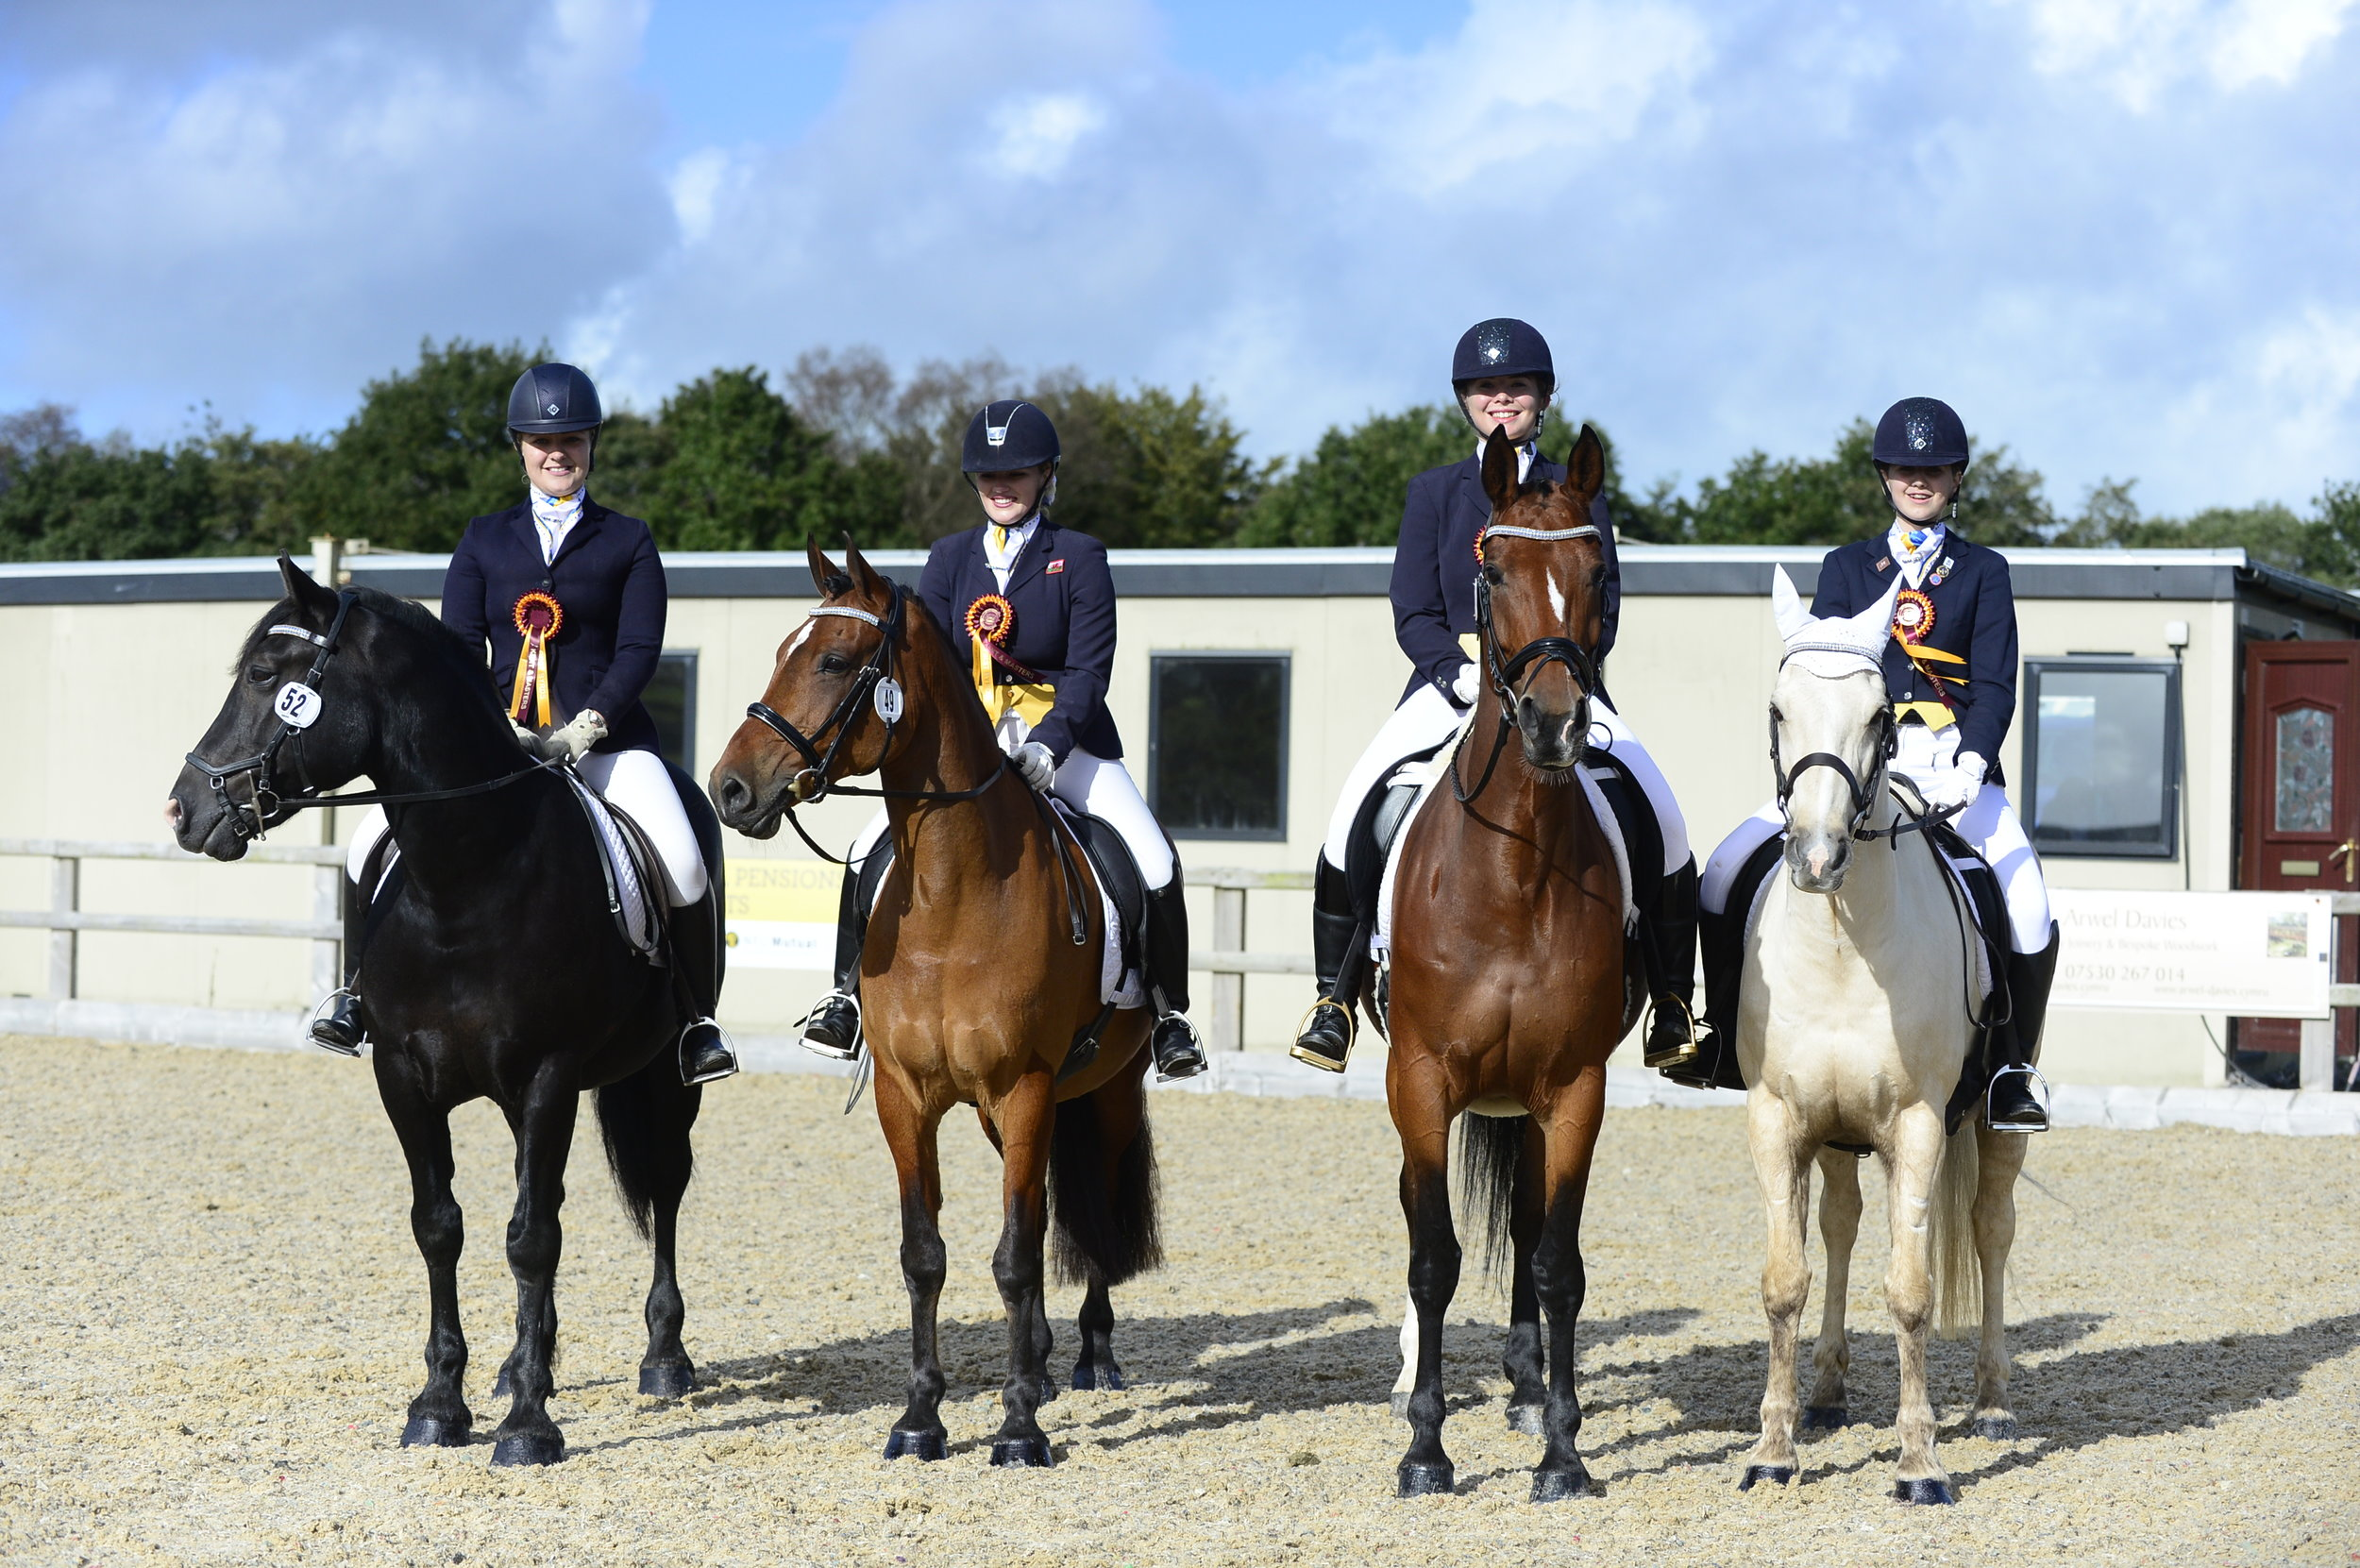 The Team Quest winning Pembrokeshire Lunachicks riders (Credit: Kevin Sparrow Photography)